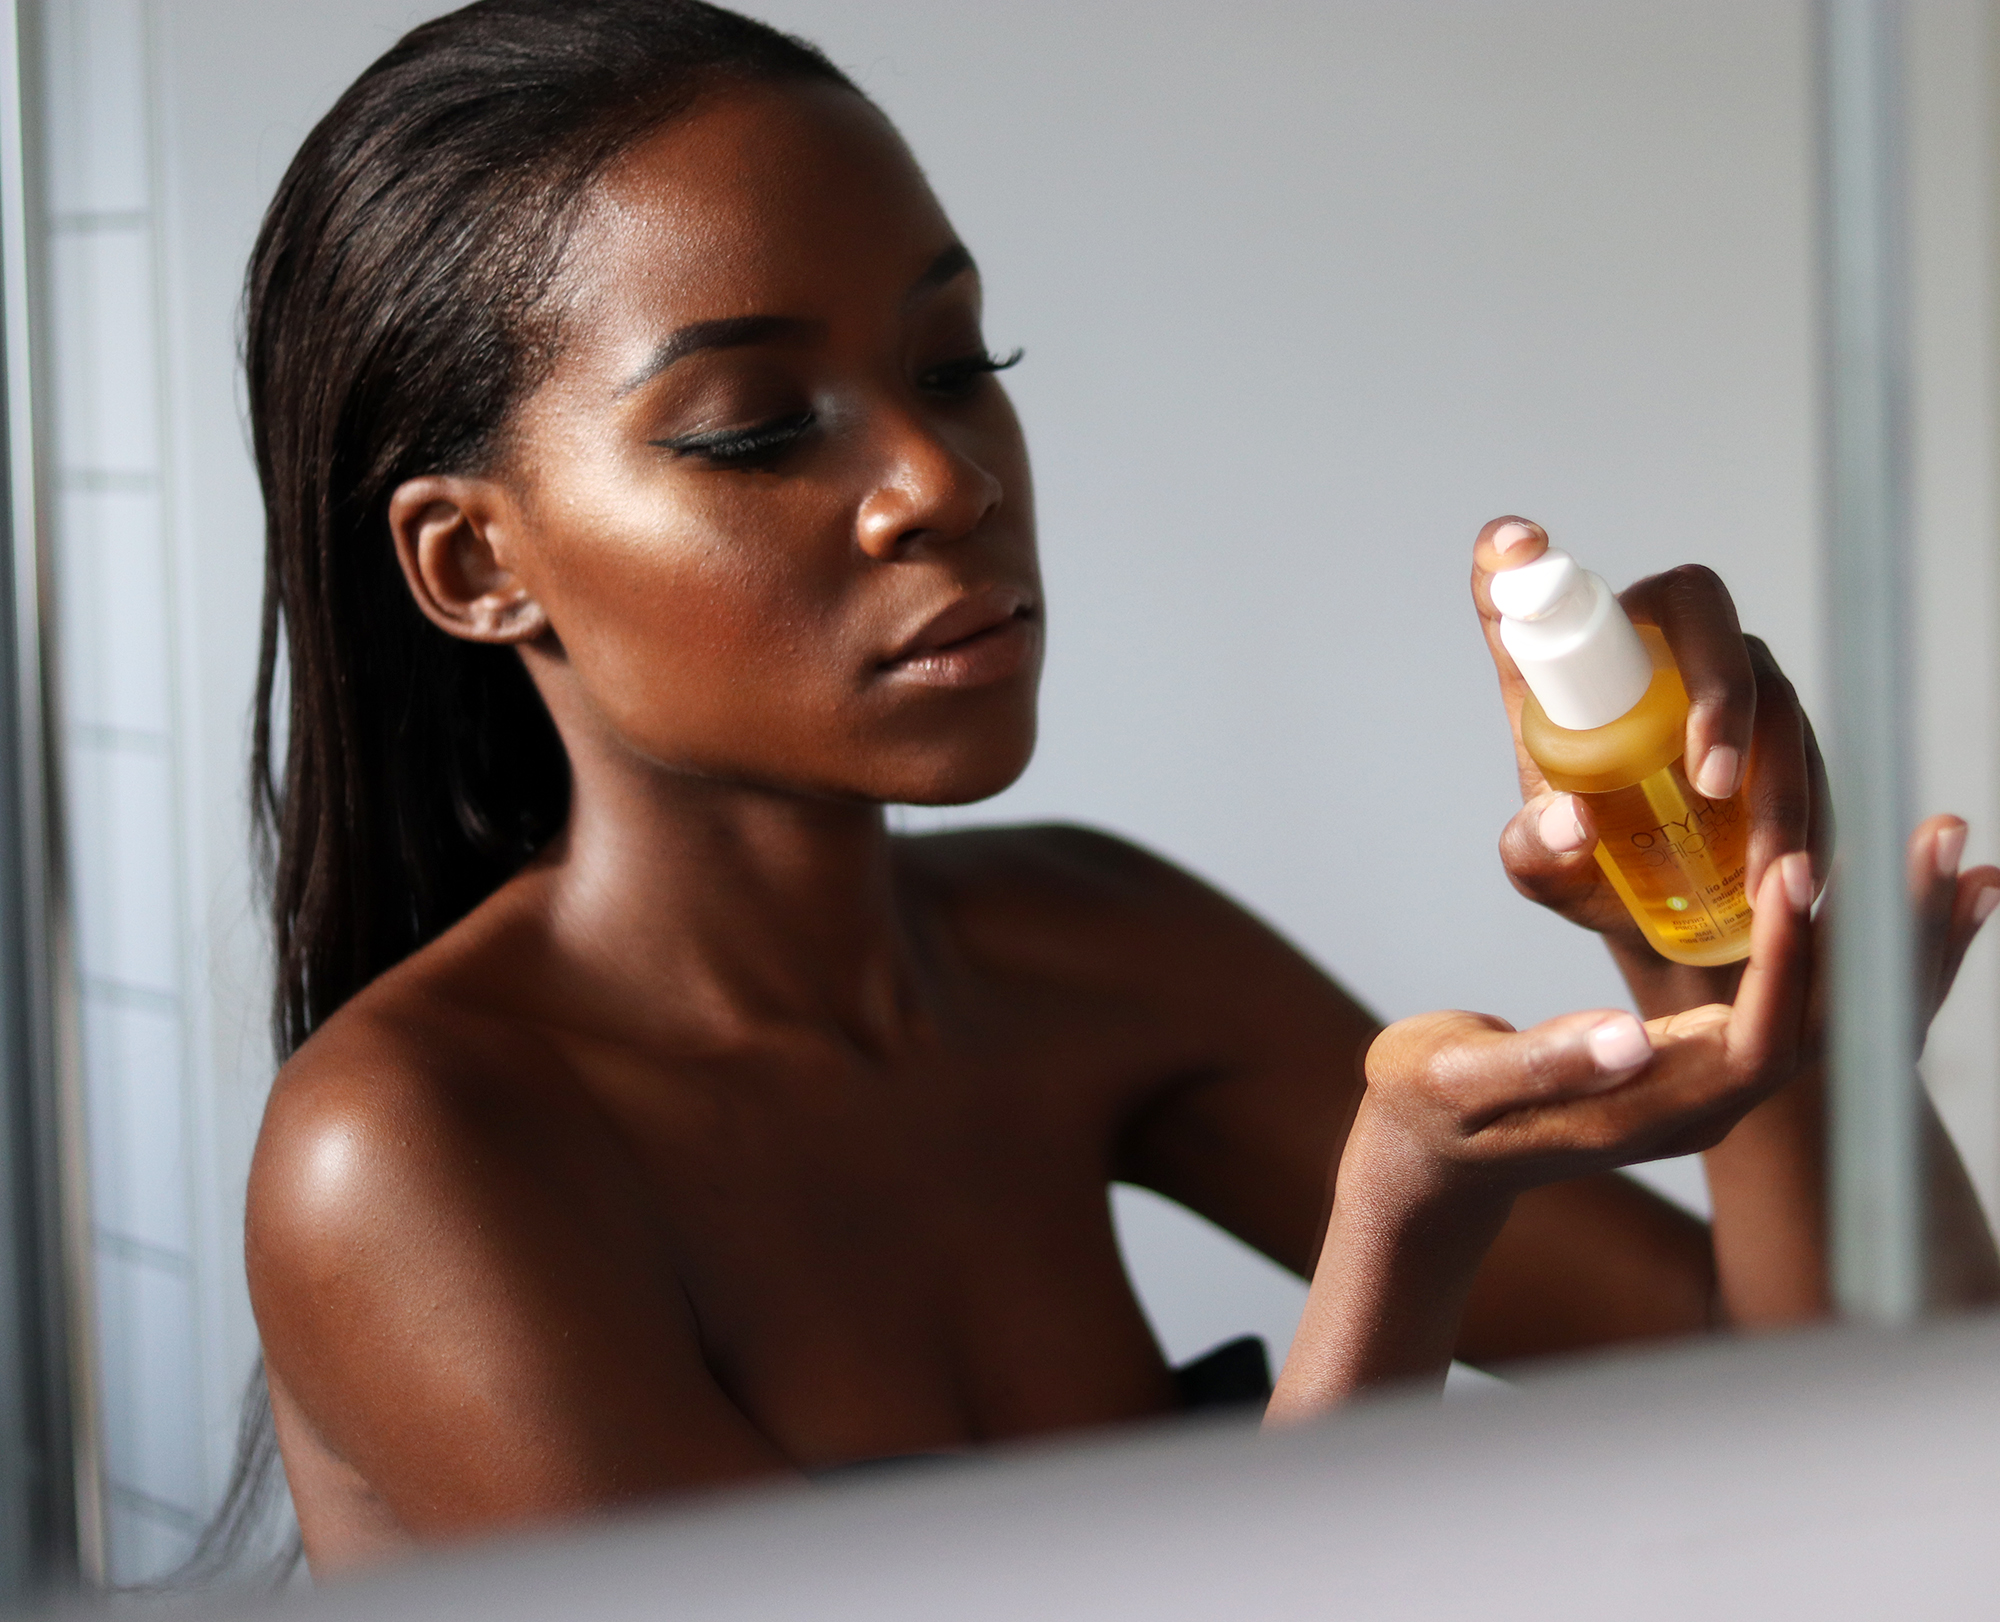 Using a nourishing hair oil by Phytp Specifics for relaxed hair.The oil contains a blend of oils which are great for repairing damaged relaxed hair.